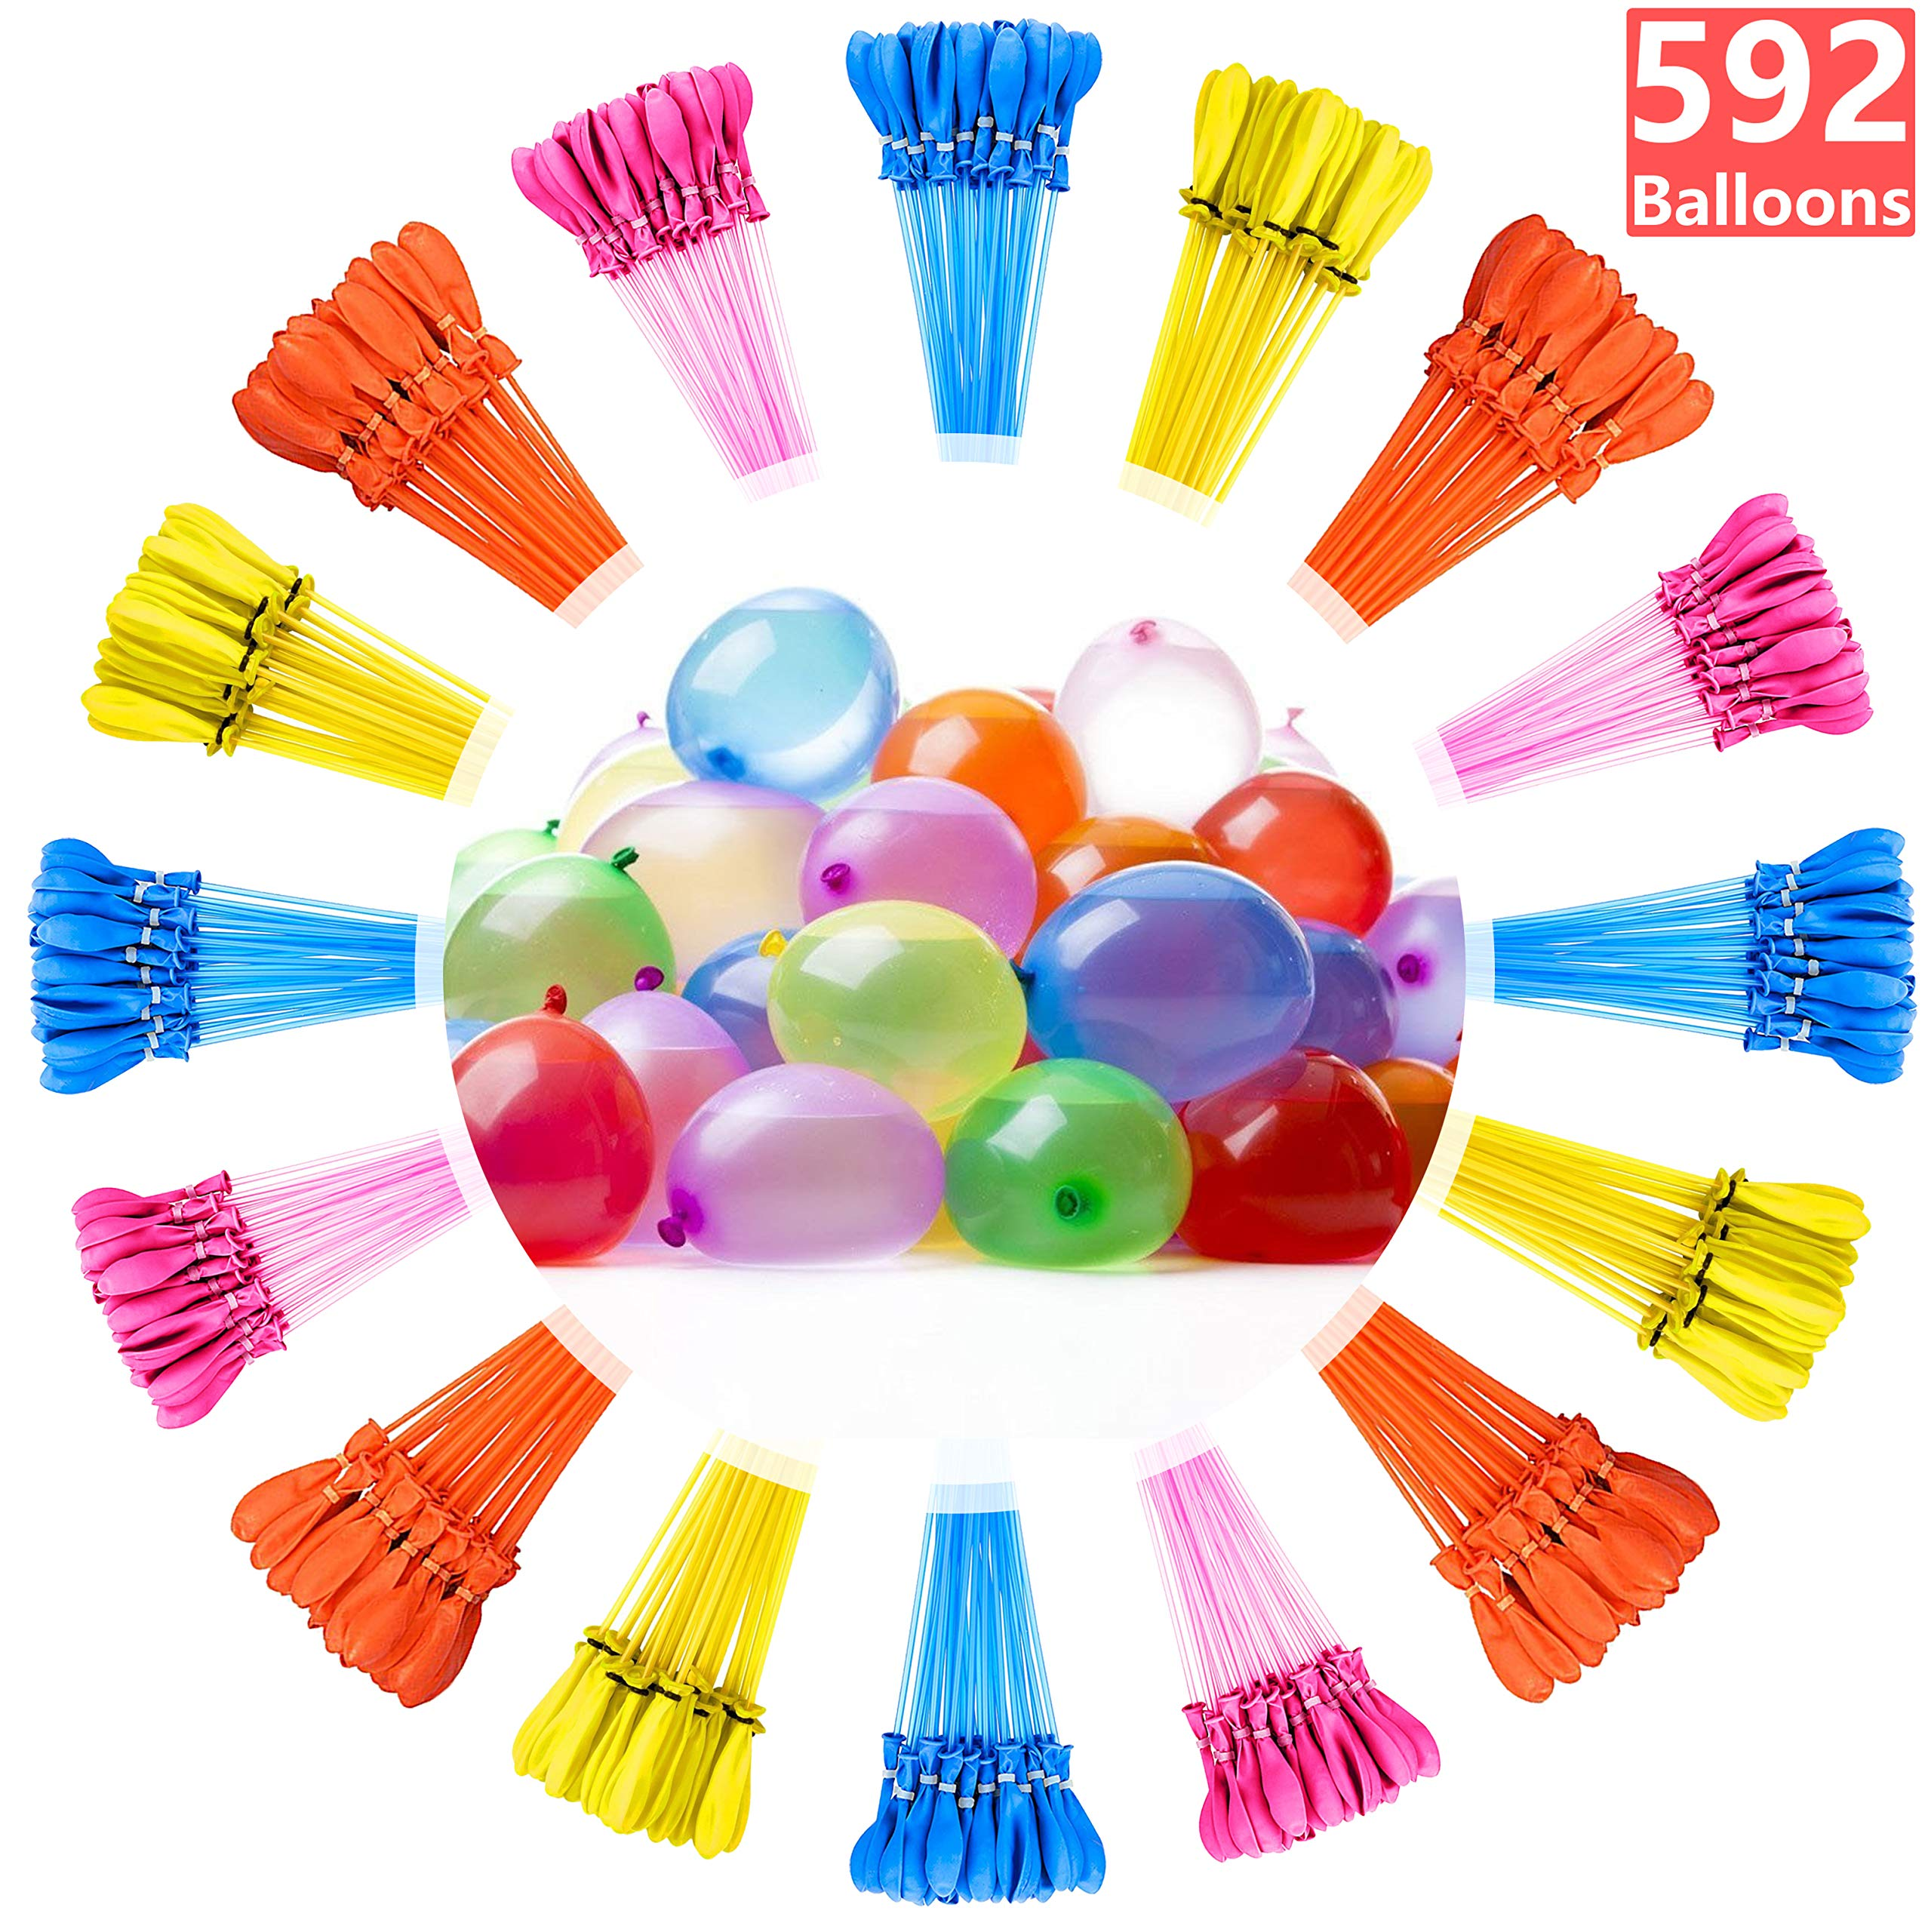 Water Balloons for Kids Girls Boys Balloons Set Party Games Quick Fill Water Balloons 592 Bunches Swimming Pool Outdoor Summer Fun G3 by Magic balloons